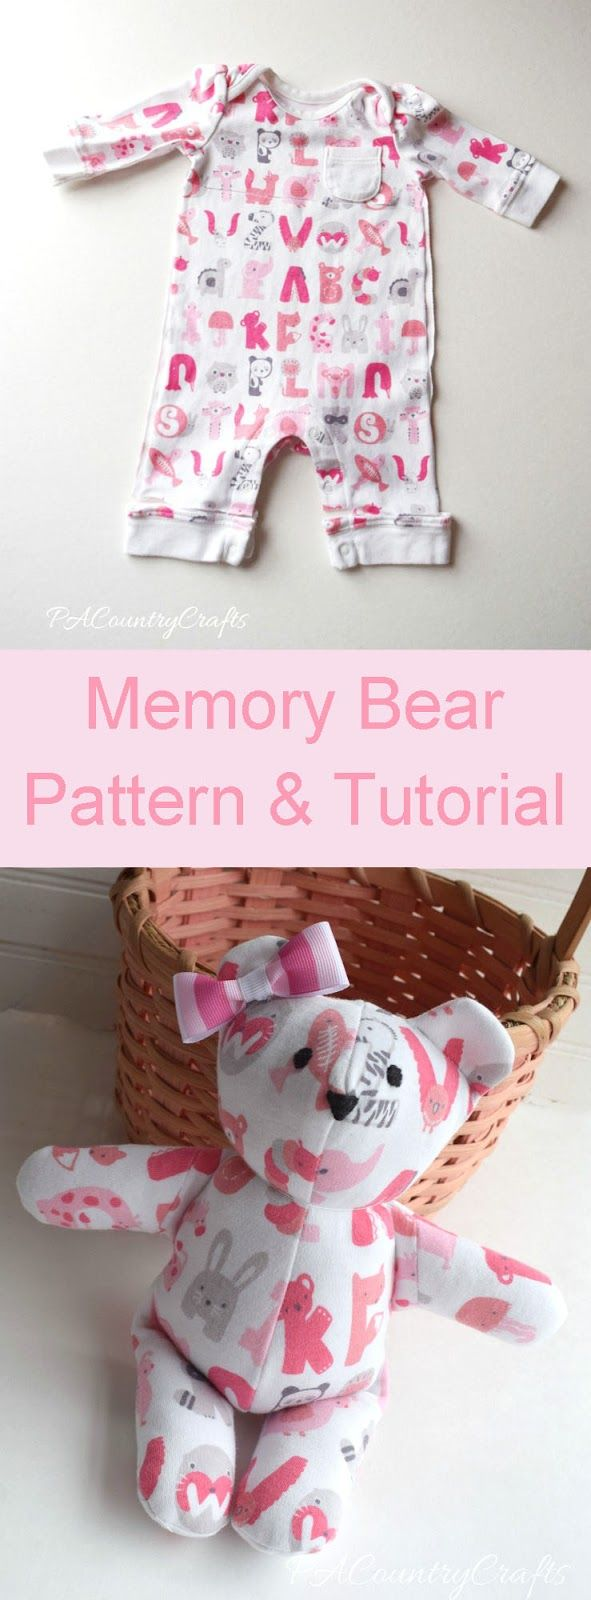 Memory bear Free sewing pattern and tutorial.                              …